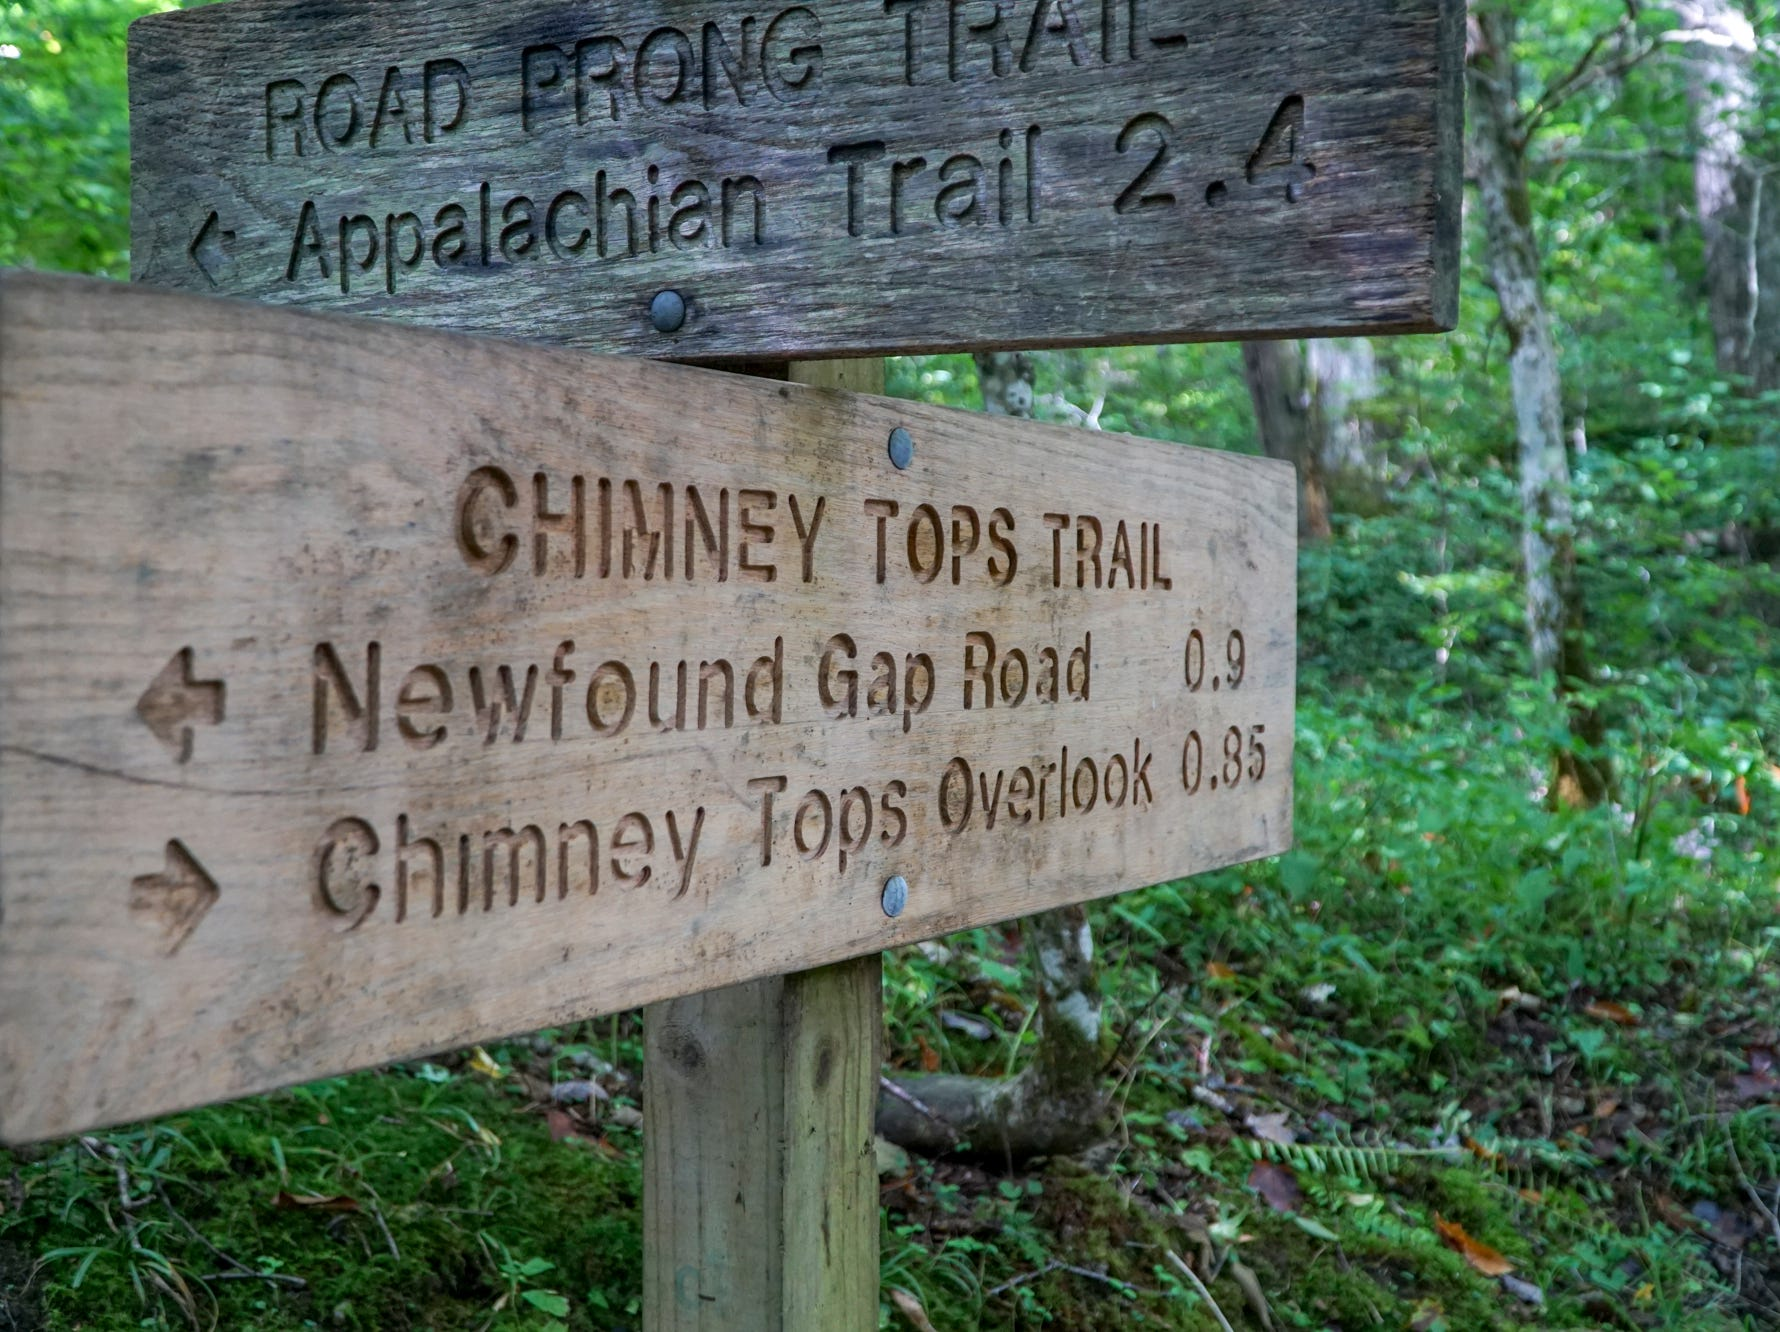 The sweeping views, frequent river crossings and short length of the Chimney Tops trail makes it a popular destination for hikers in the Great Smoky Mountains National Park.